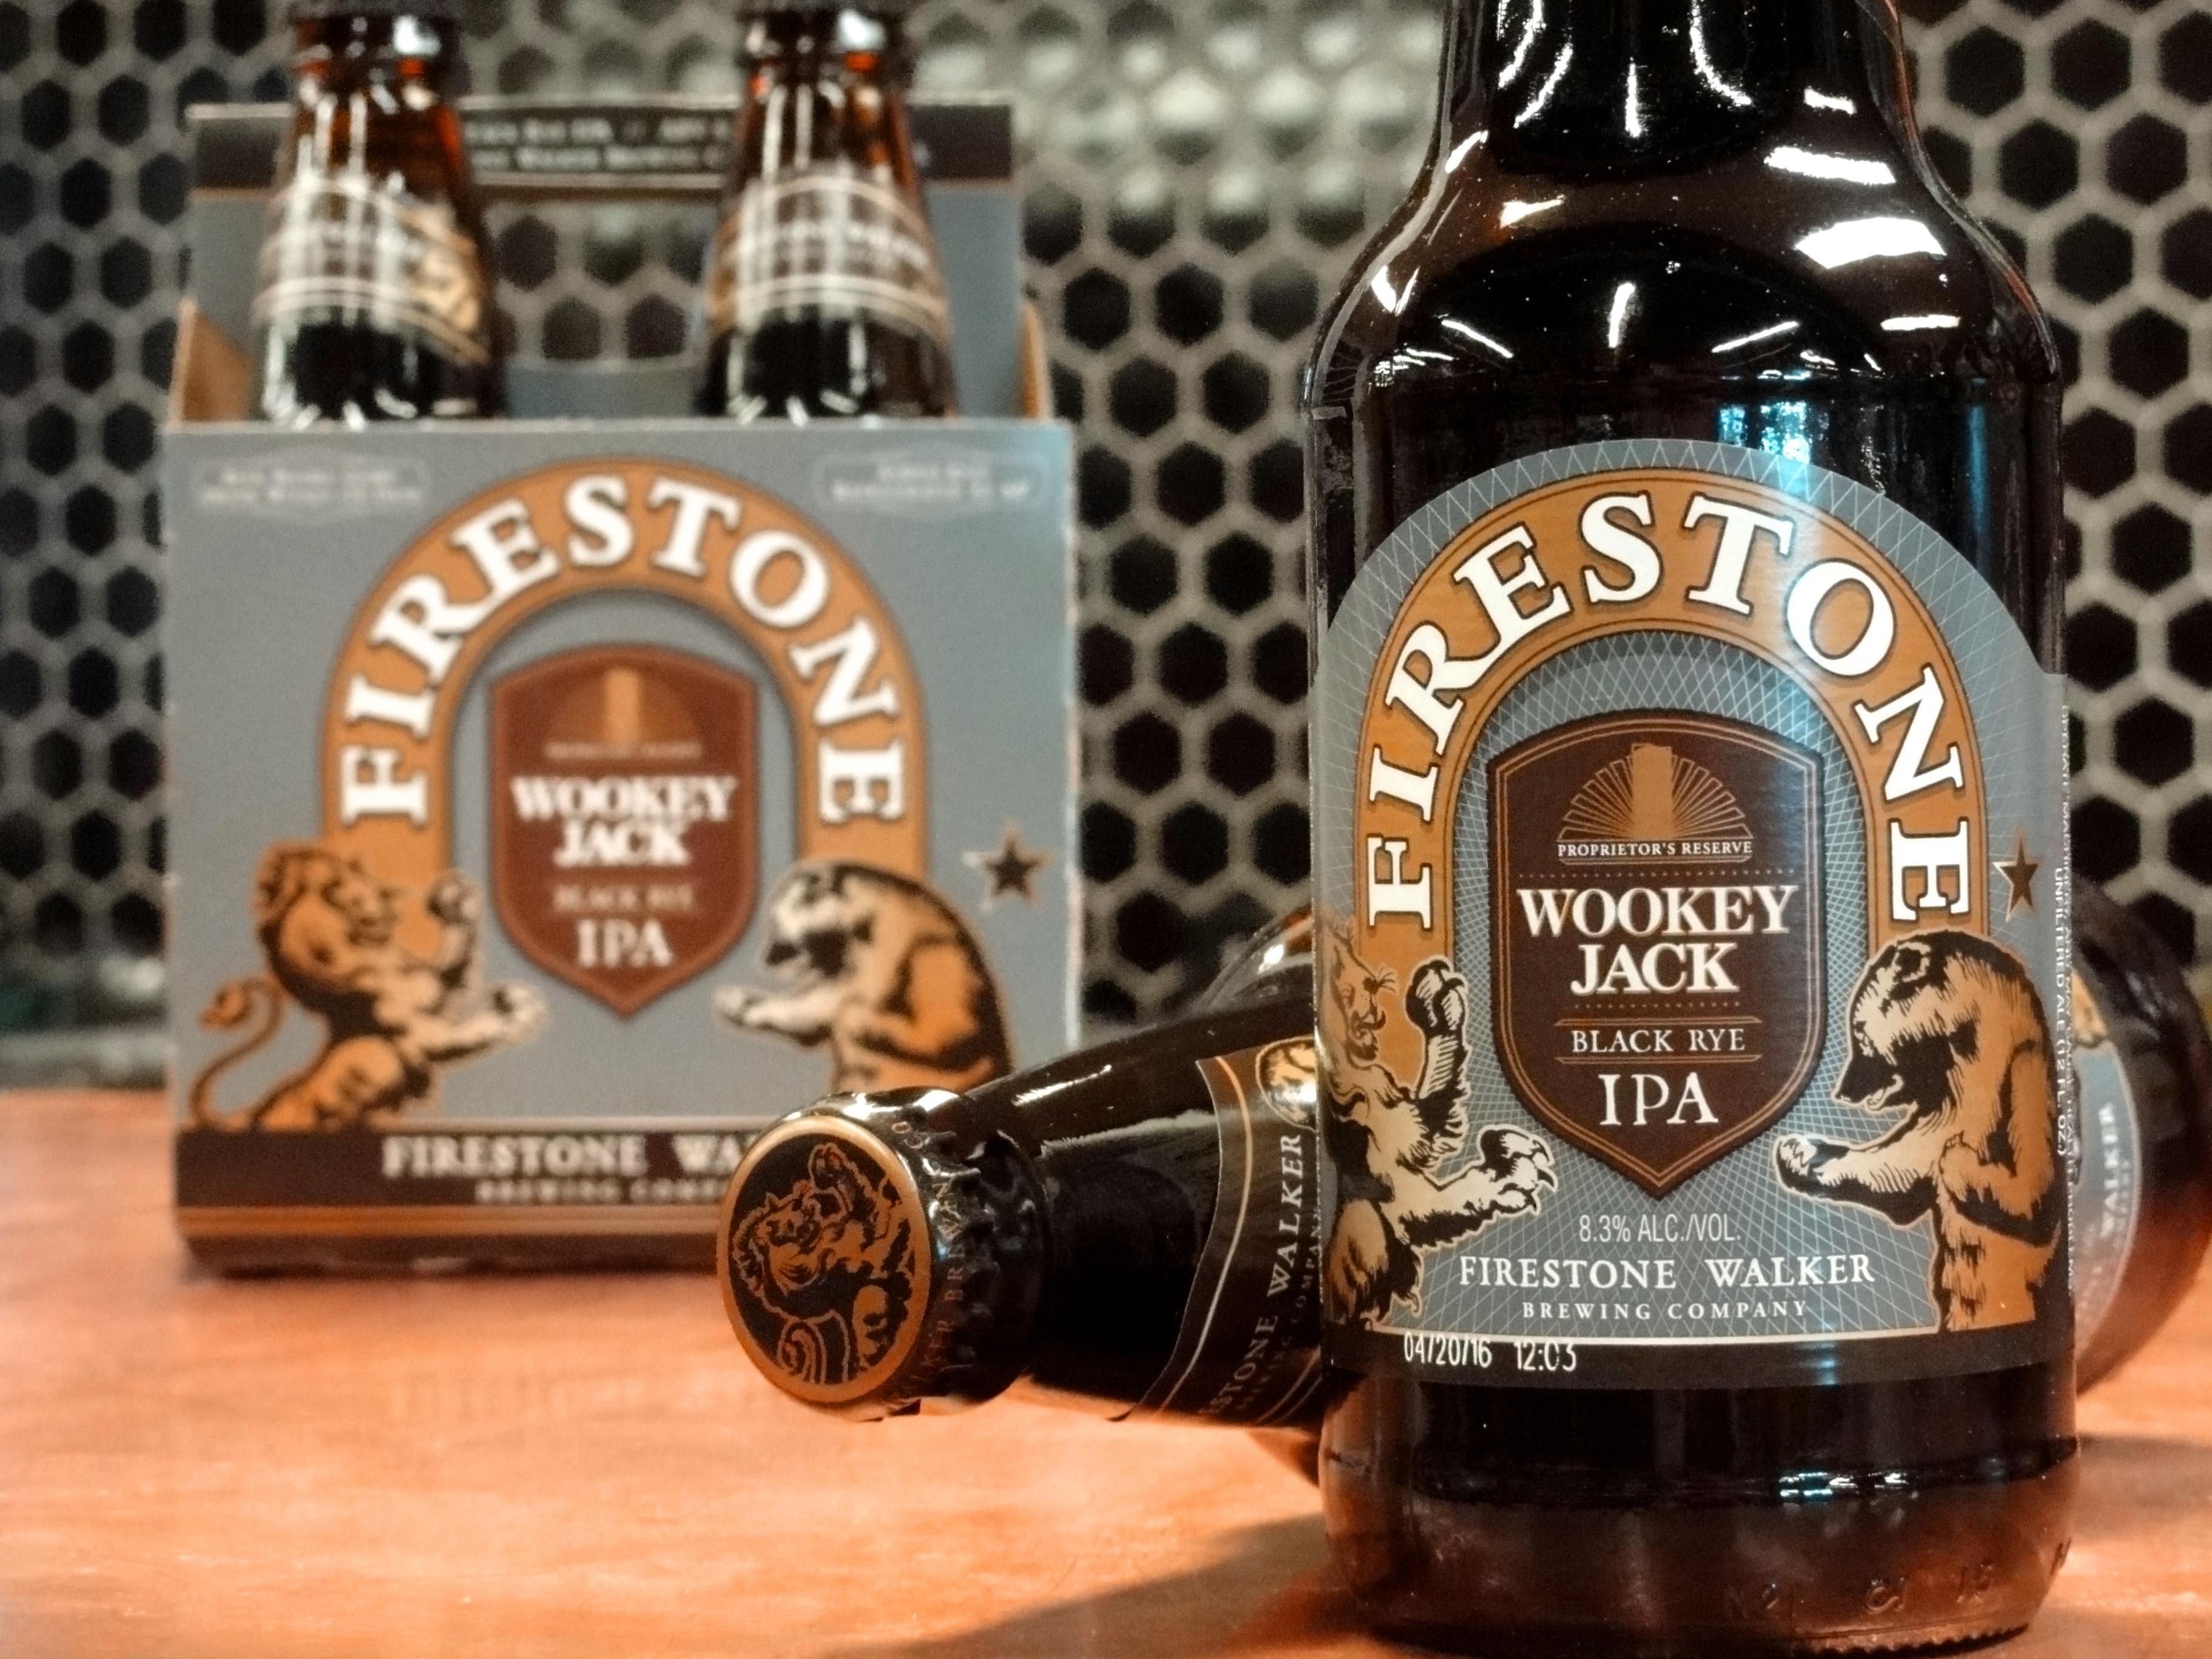 wookey-jack-black-ipa-firestone-walker